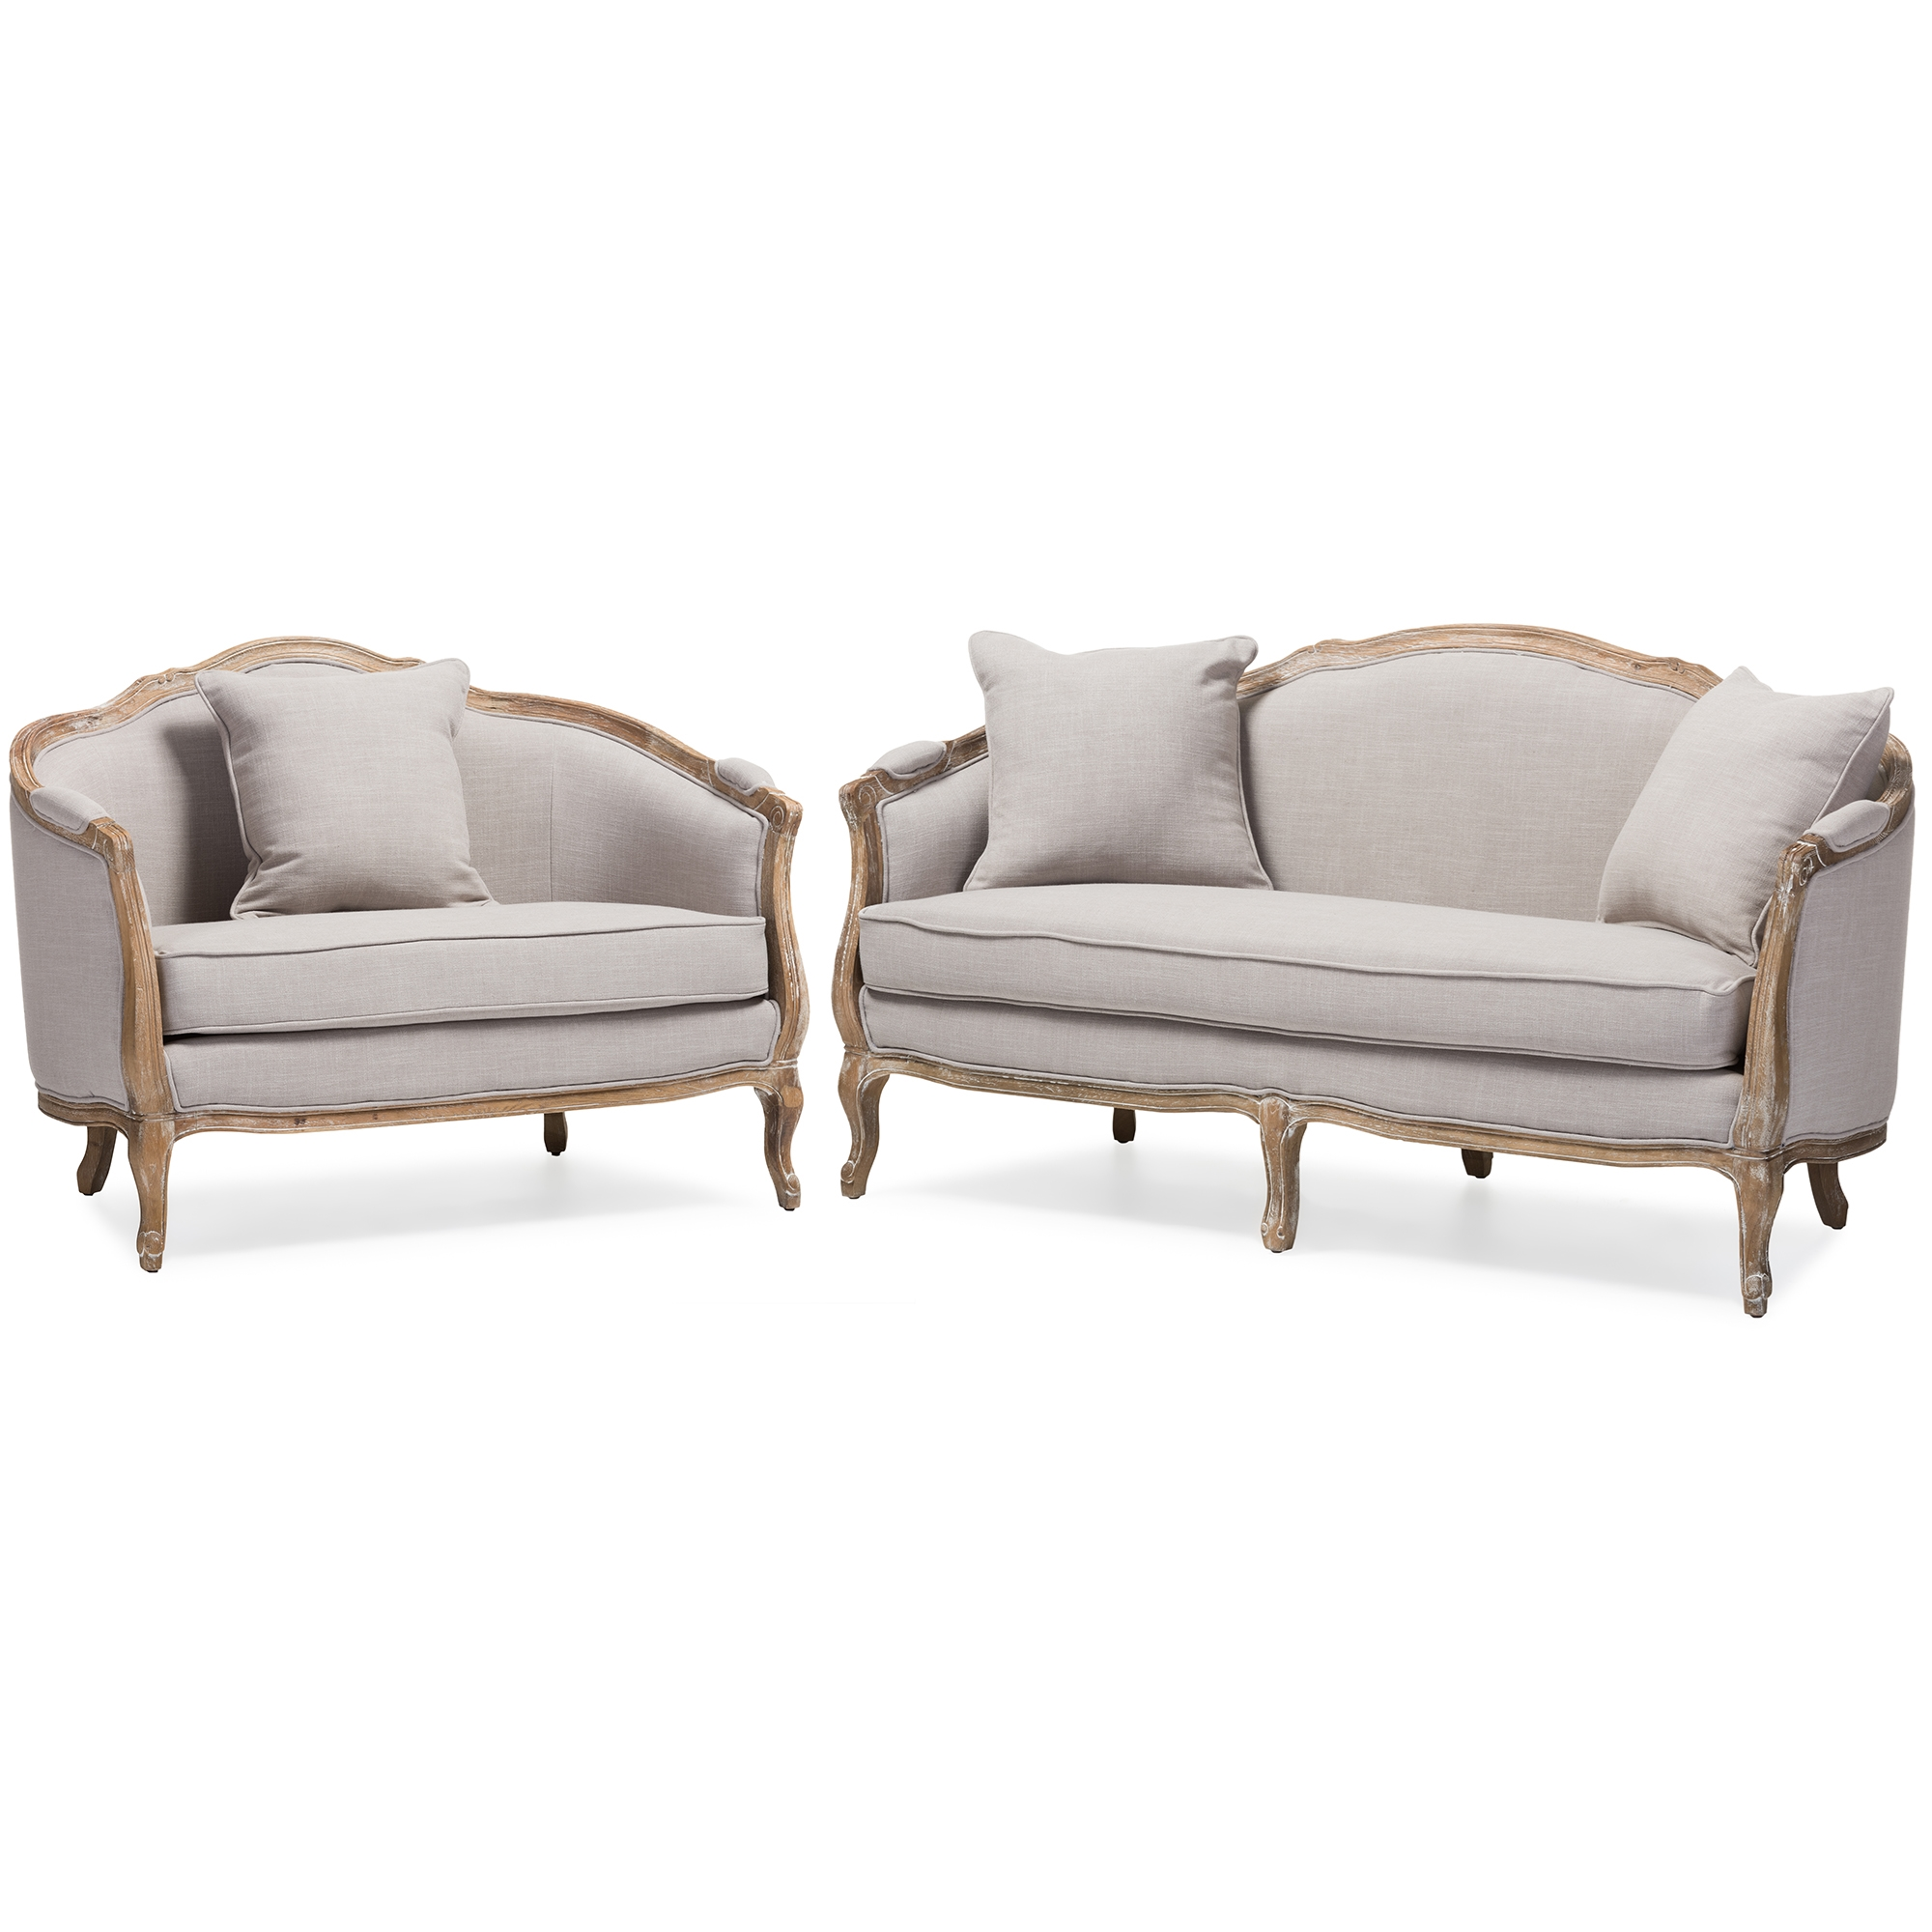 Baxton Studio Chantal French Country White Wash Weathered Oak Distressed  Beige Linen Upholstered 3 Seater Sofa And 2 Seater Loveseat Living Room Set